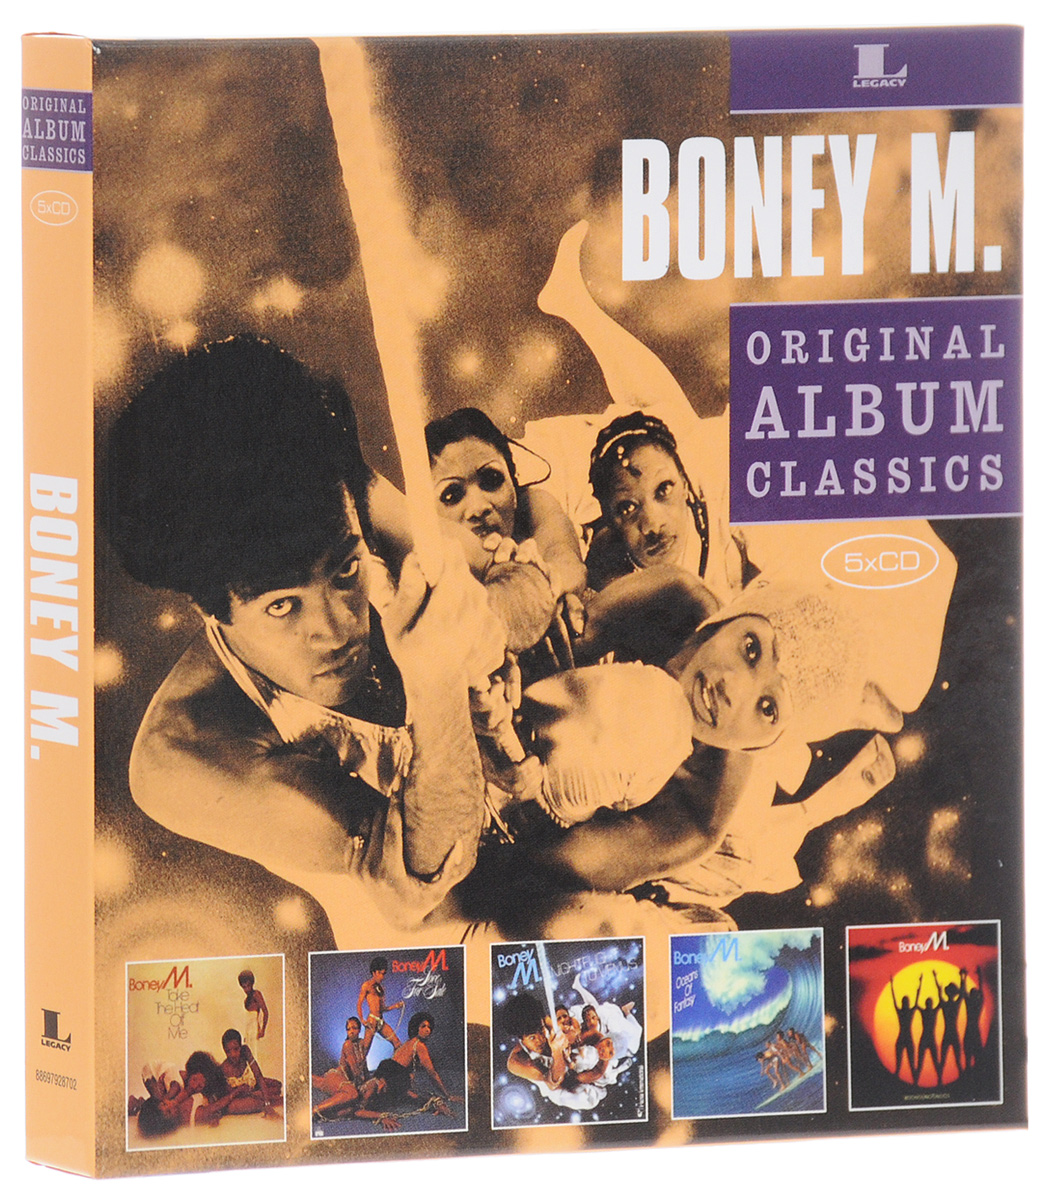 Boney M Boney M. Original Album Classics (5 CD) boney m boney m boonoonoonoos